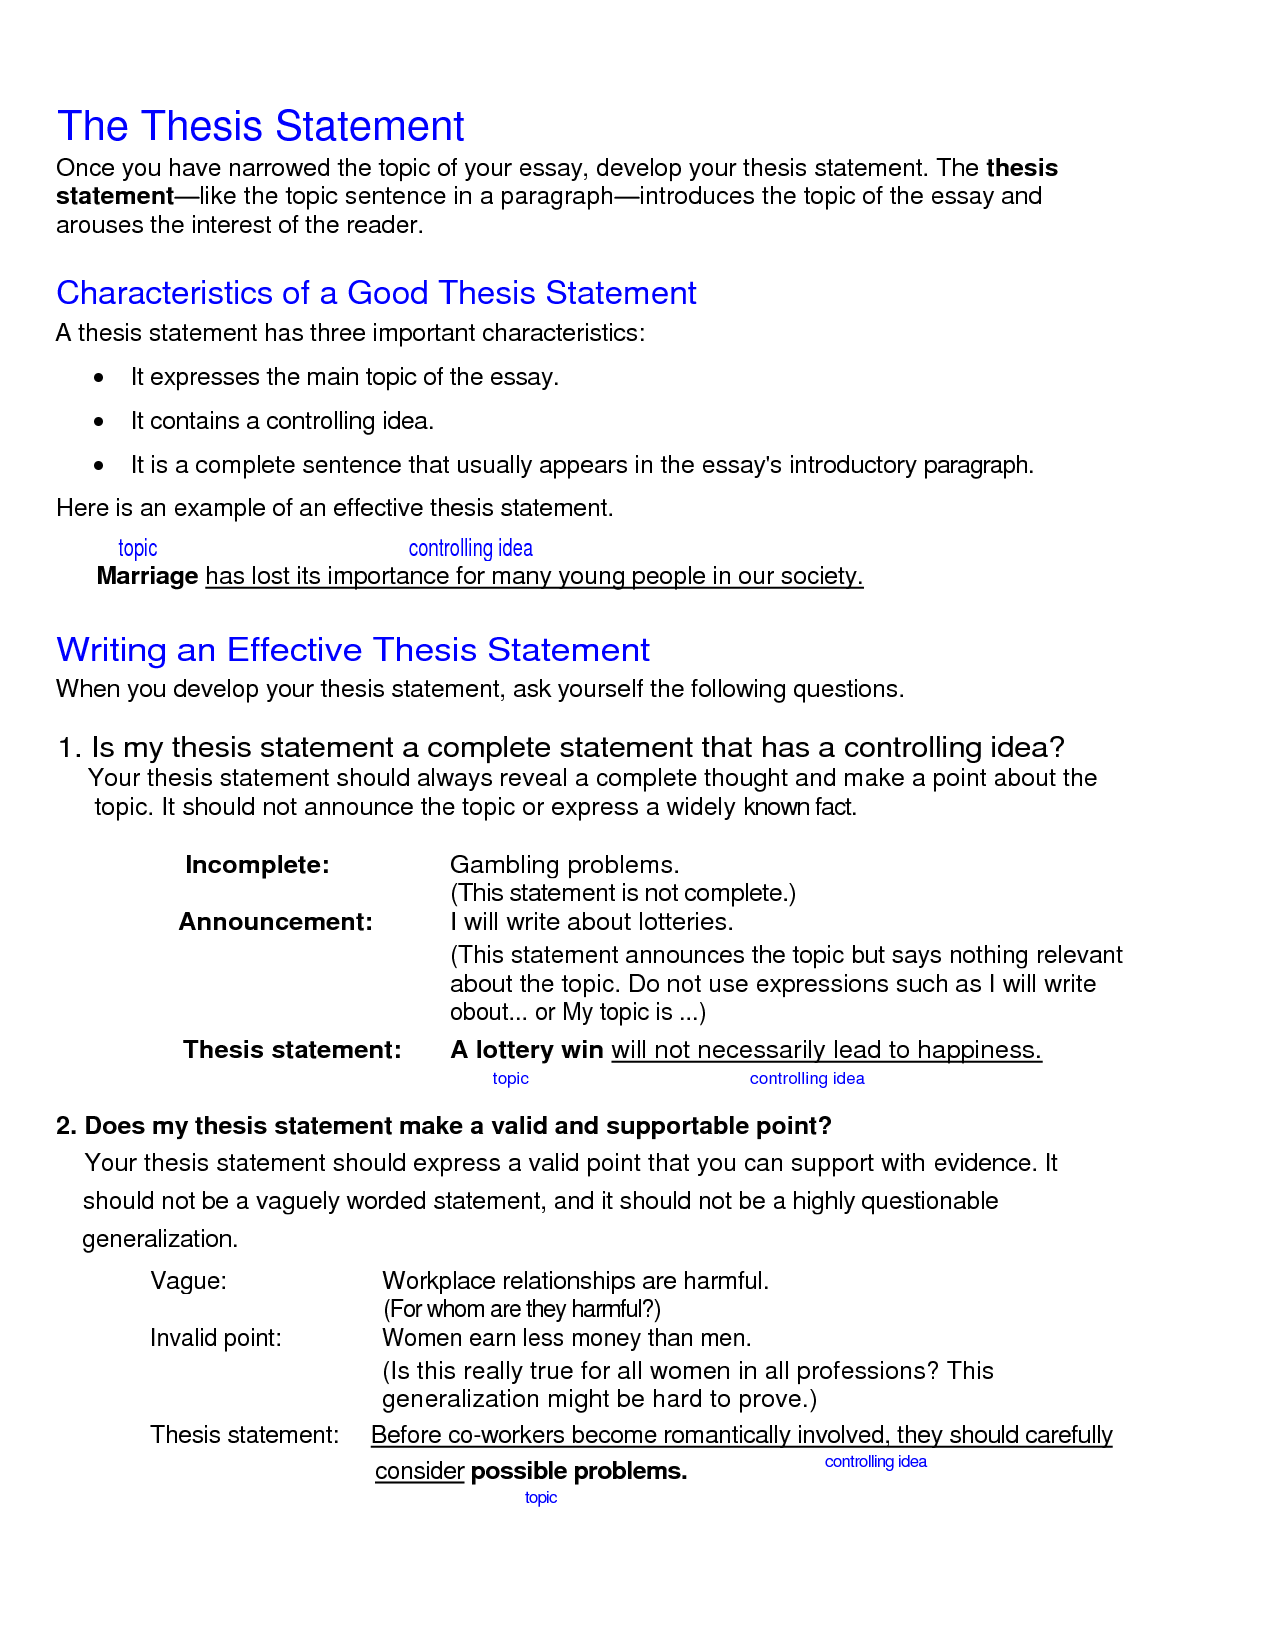 College Thesis Template  Google Search  Coursework  Pinterest  College Thesis Template  Google Search